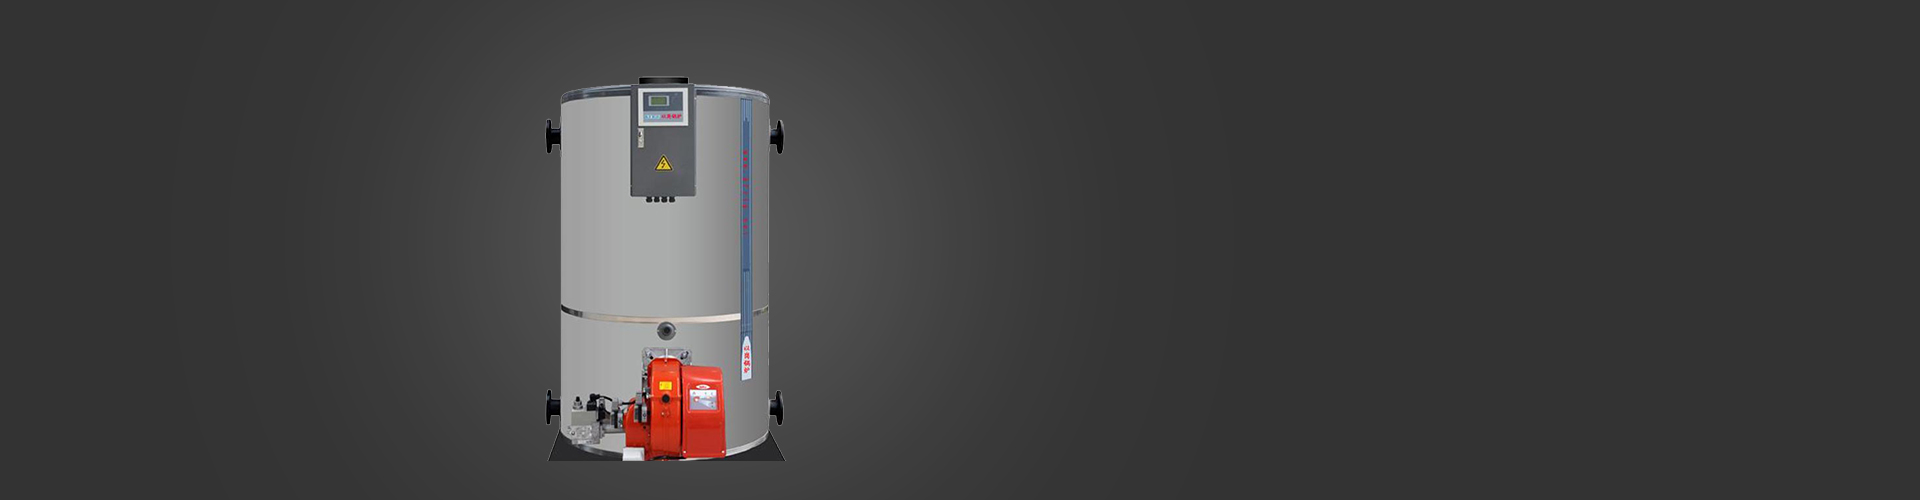 CLHS Series Oil Gas fired Hot Water Boiler